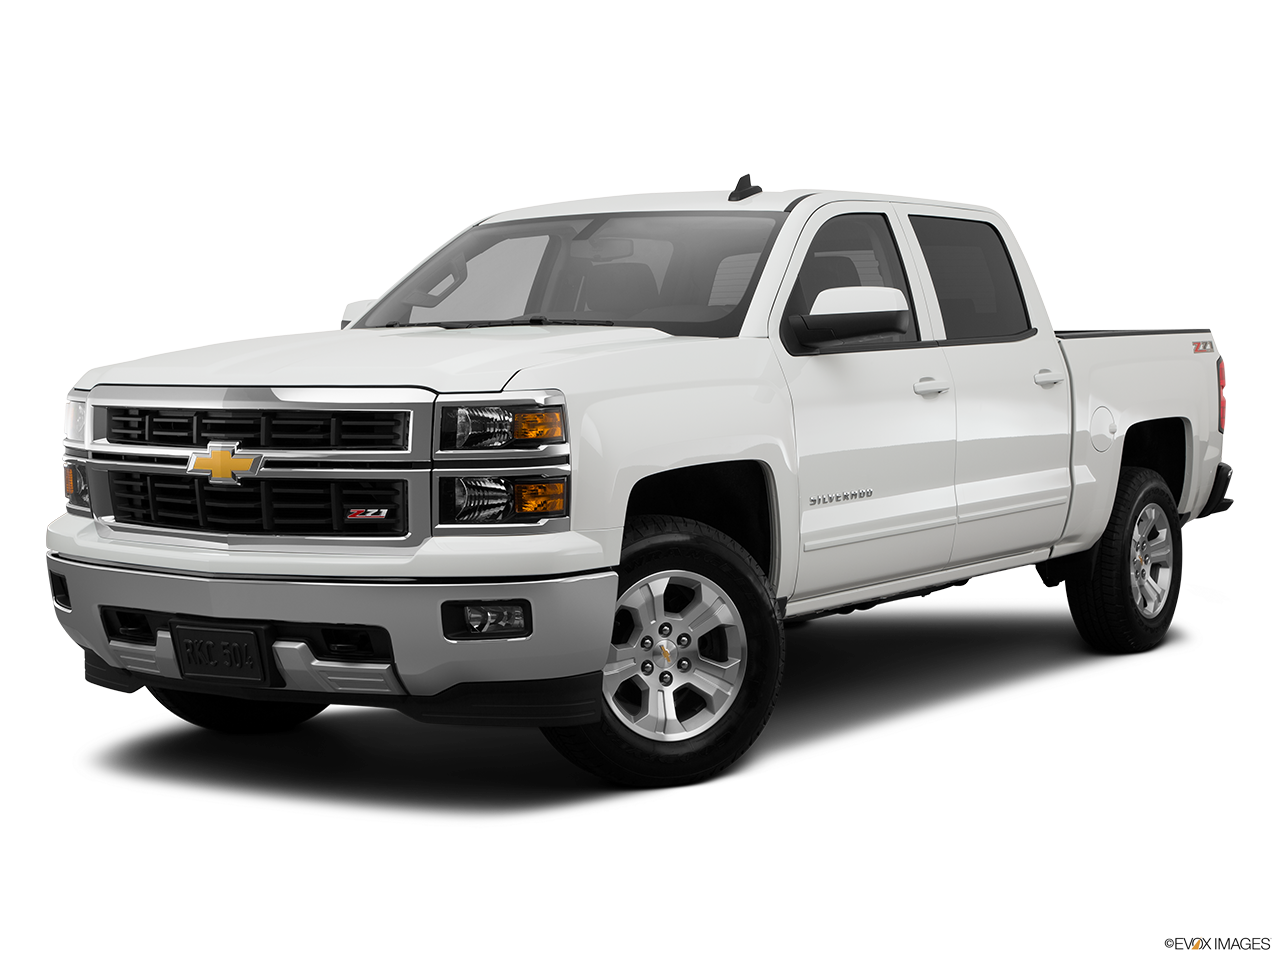 2015 chevrolet silverado 1500 information and photos zombiedrive. Black Bedroom Furniture Sets. Home Design Ideas